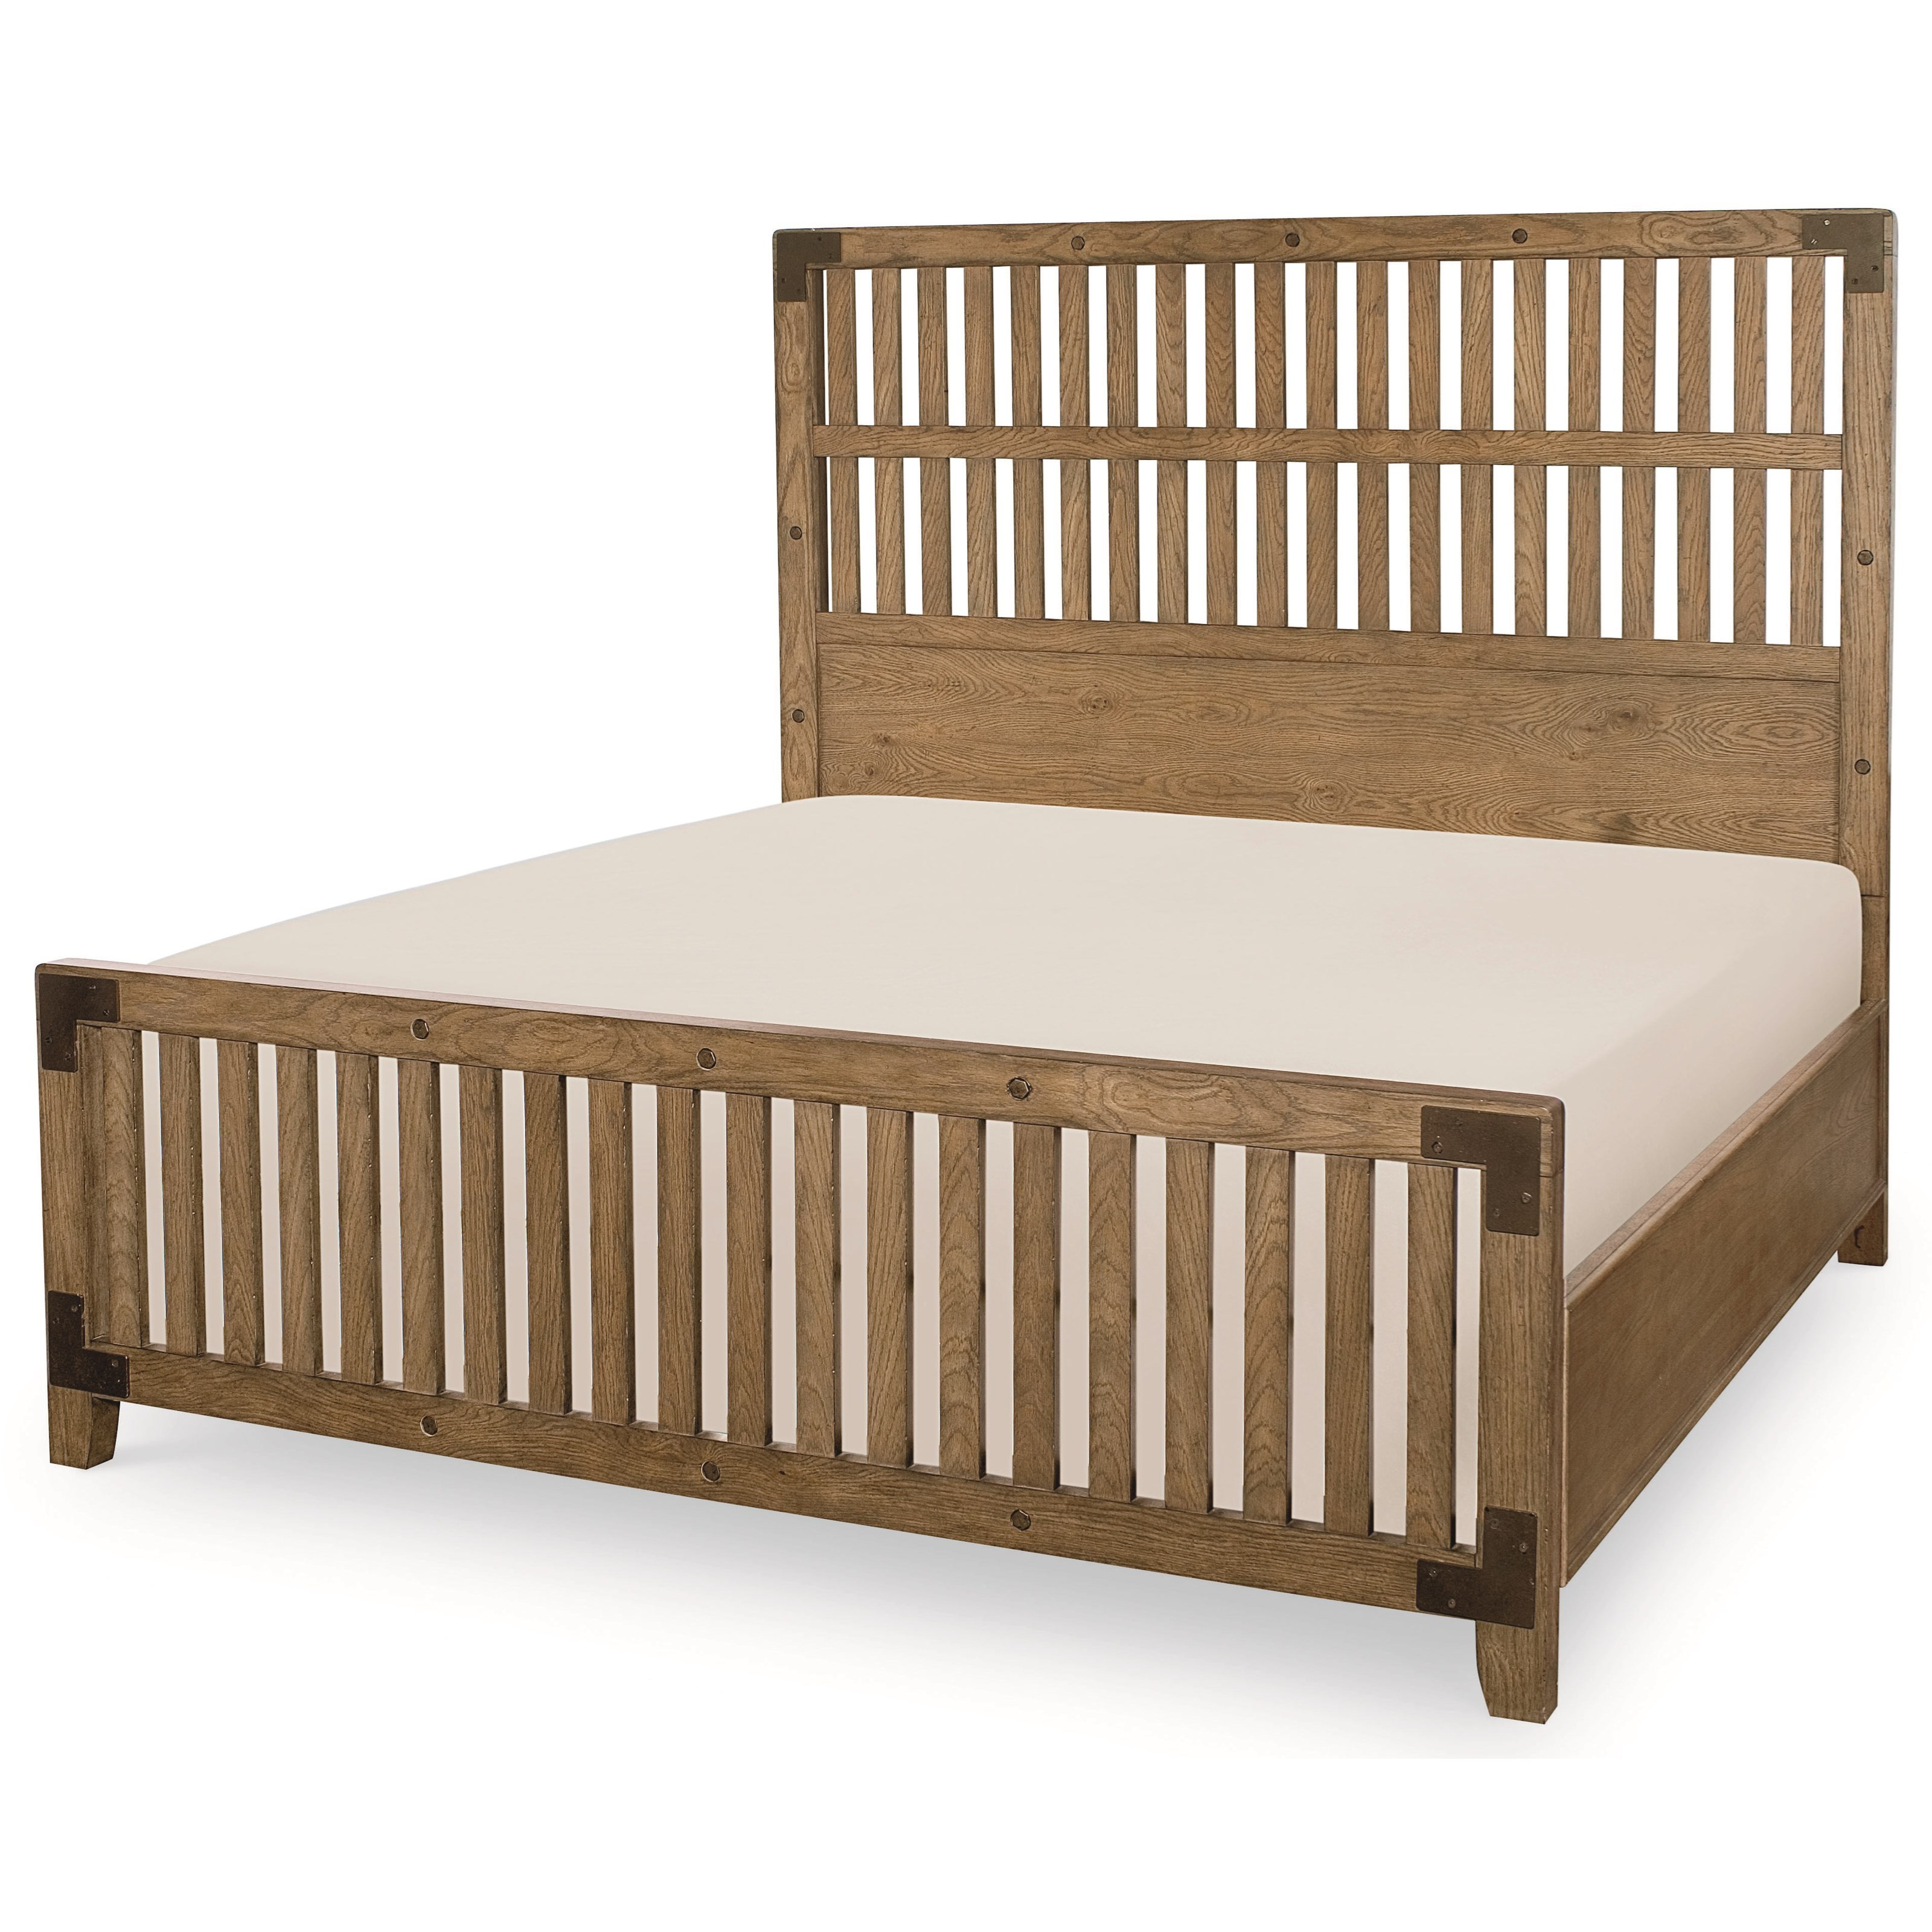 Legacy Classic Metalworks California King Complete Wood Gate Bed - Item Number: 5610-4207K